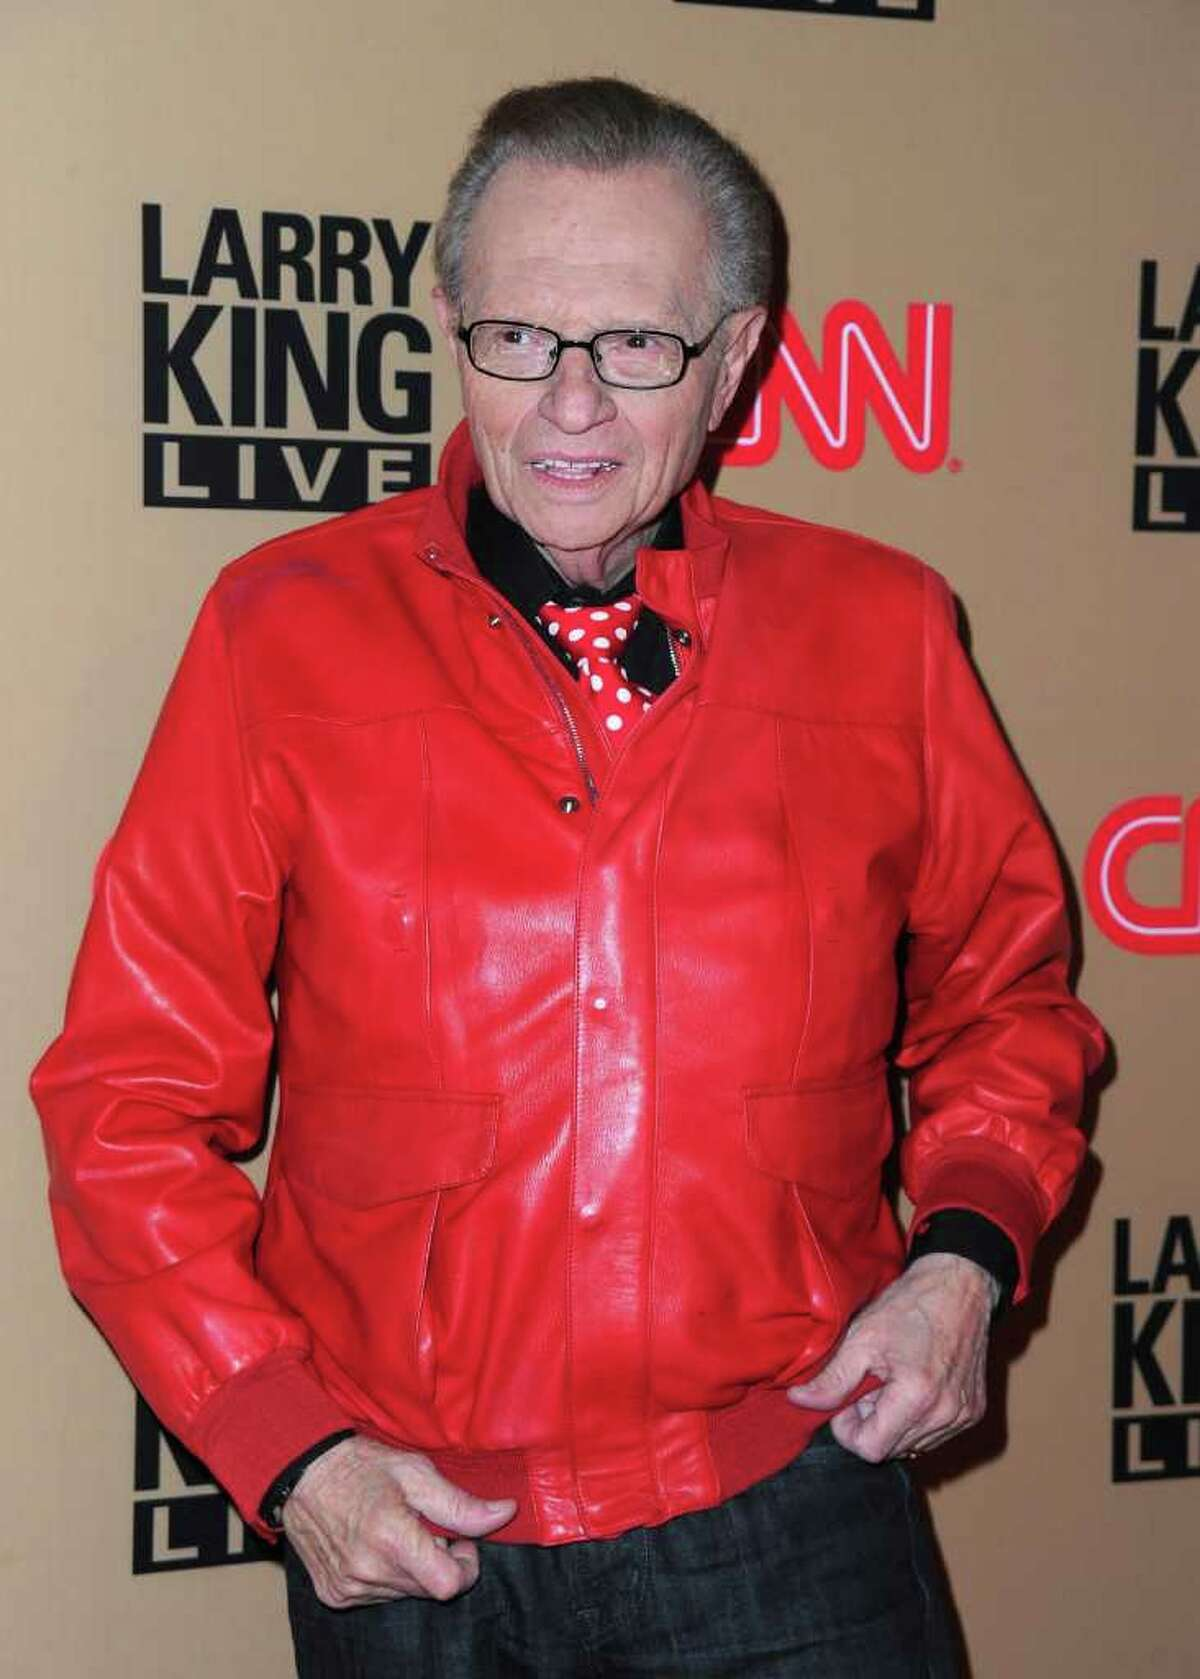 BEVERLY HILLS, CA - DECEMBER 16: TV host Larry King arrives at CNN's